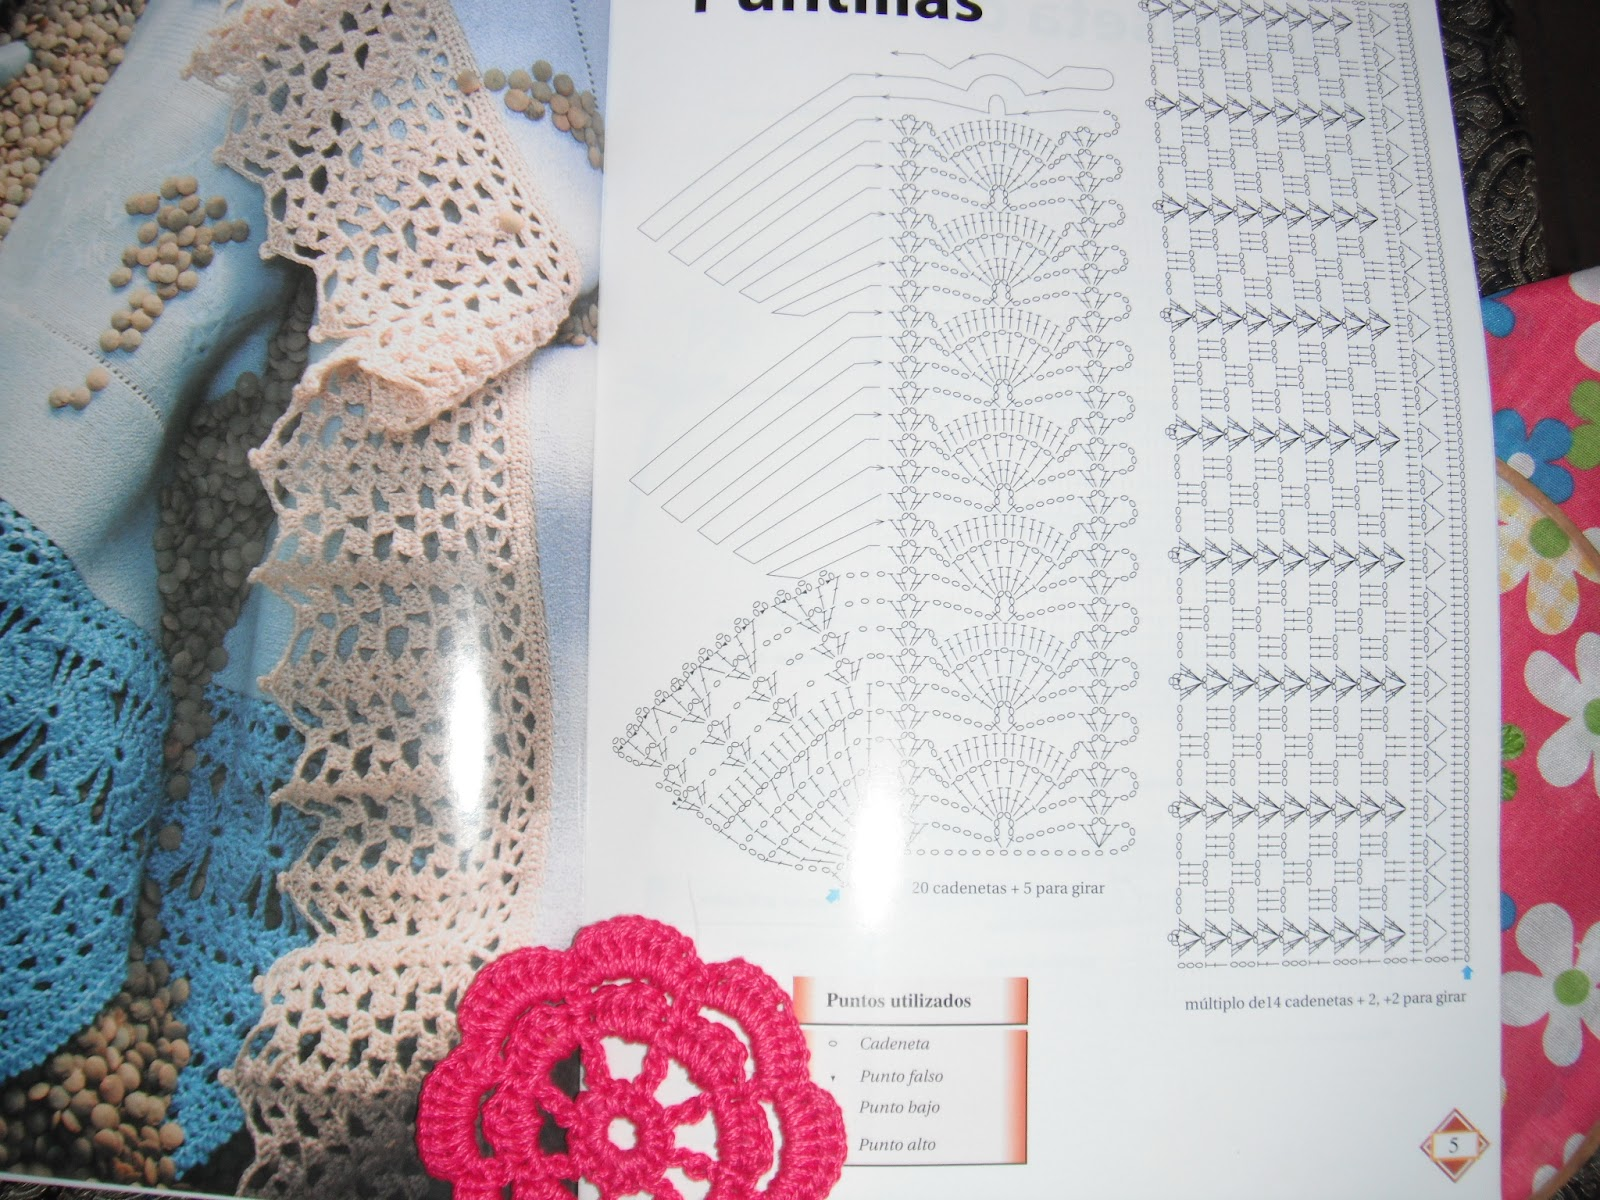 SERVILLETAS BORDADAS Y ORILLAS CON GANCHILLO CROCHET, PROYECTOS